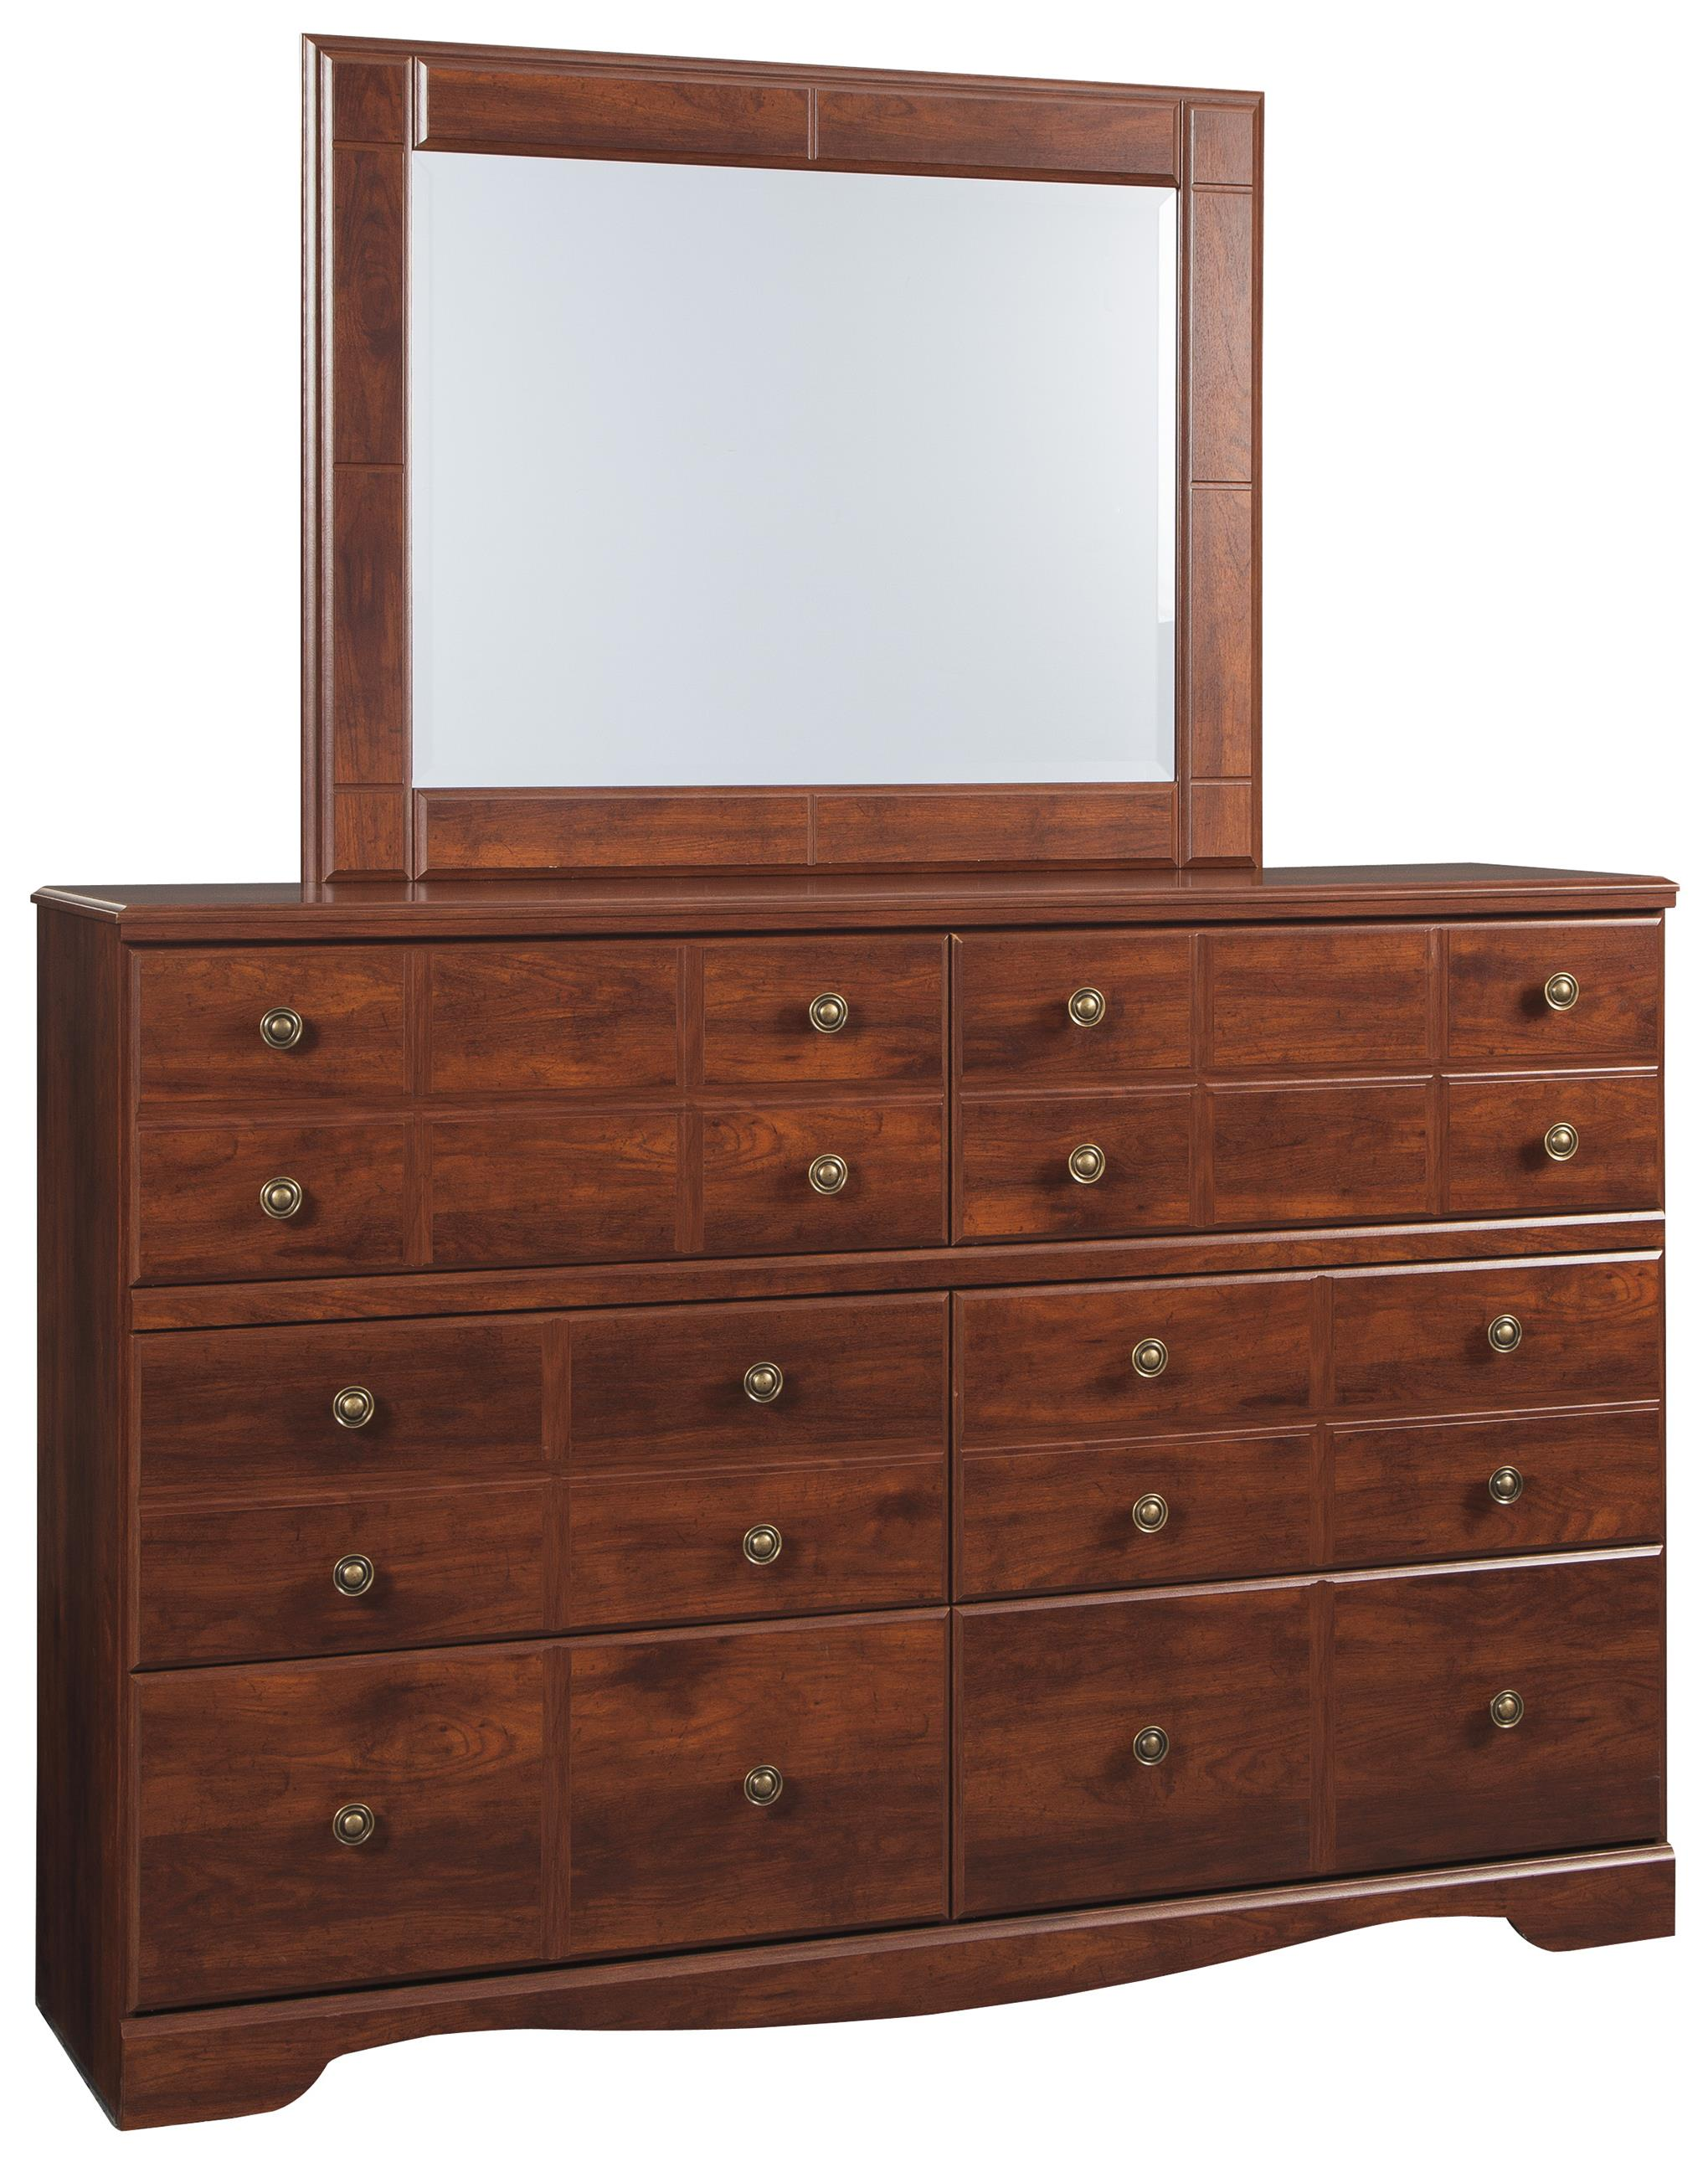 Signature Design by Ashley Brittberg Dresser & Mirror - Item Number: B265-31+36